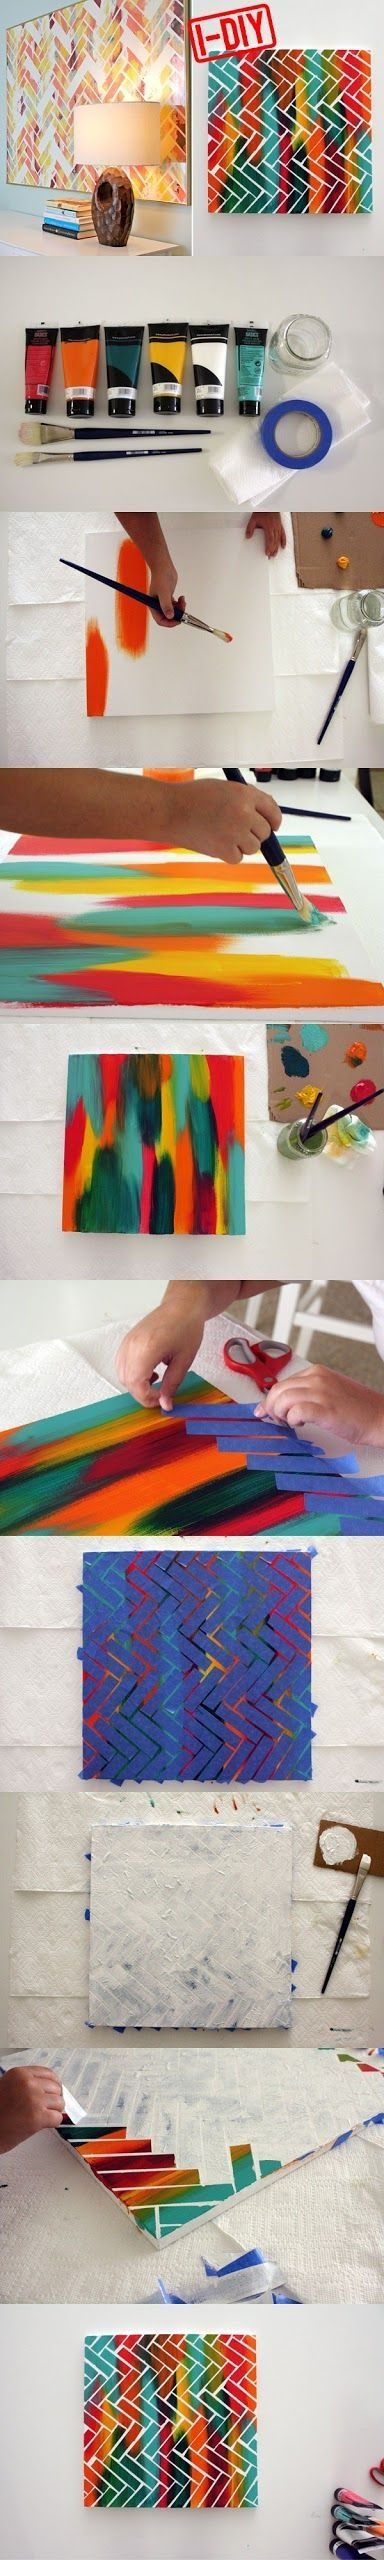 Easy ARTWORK PROJECT DIY by whalan